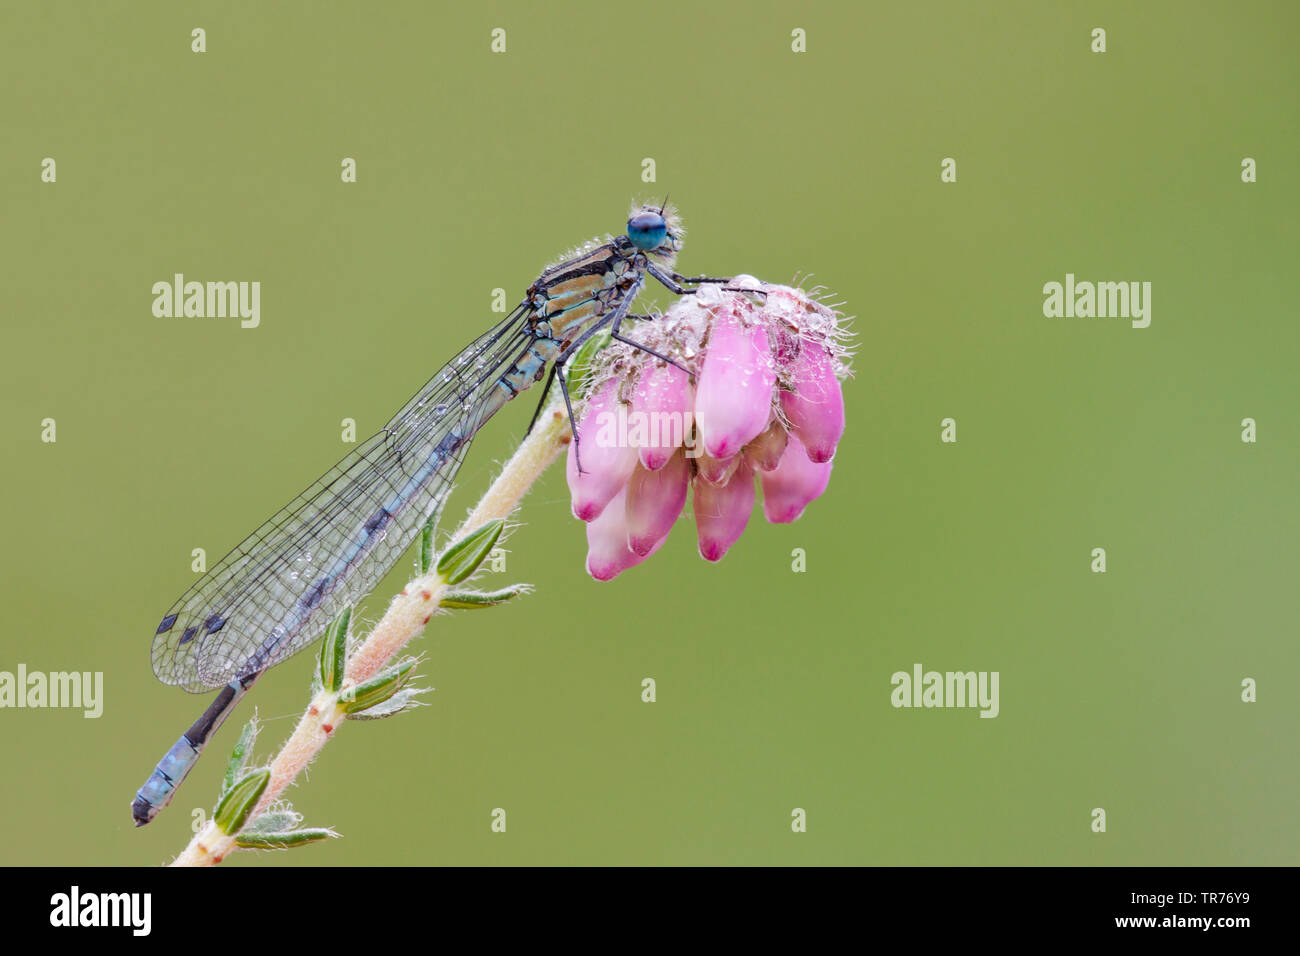 Common coenagrion, Azure damselfly (Coenagrion puella), on a flower, Netherlands Stock Photo